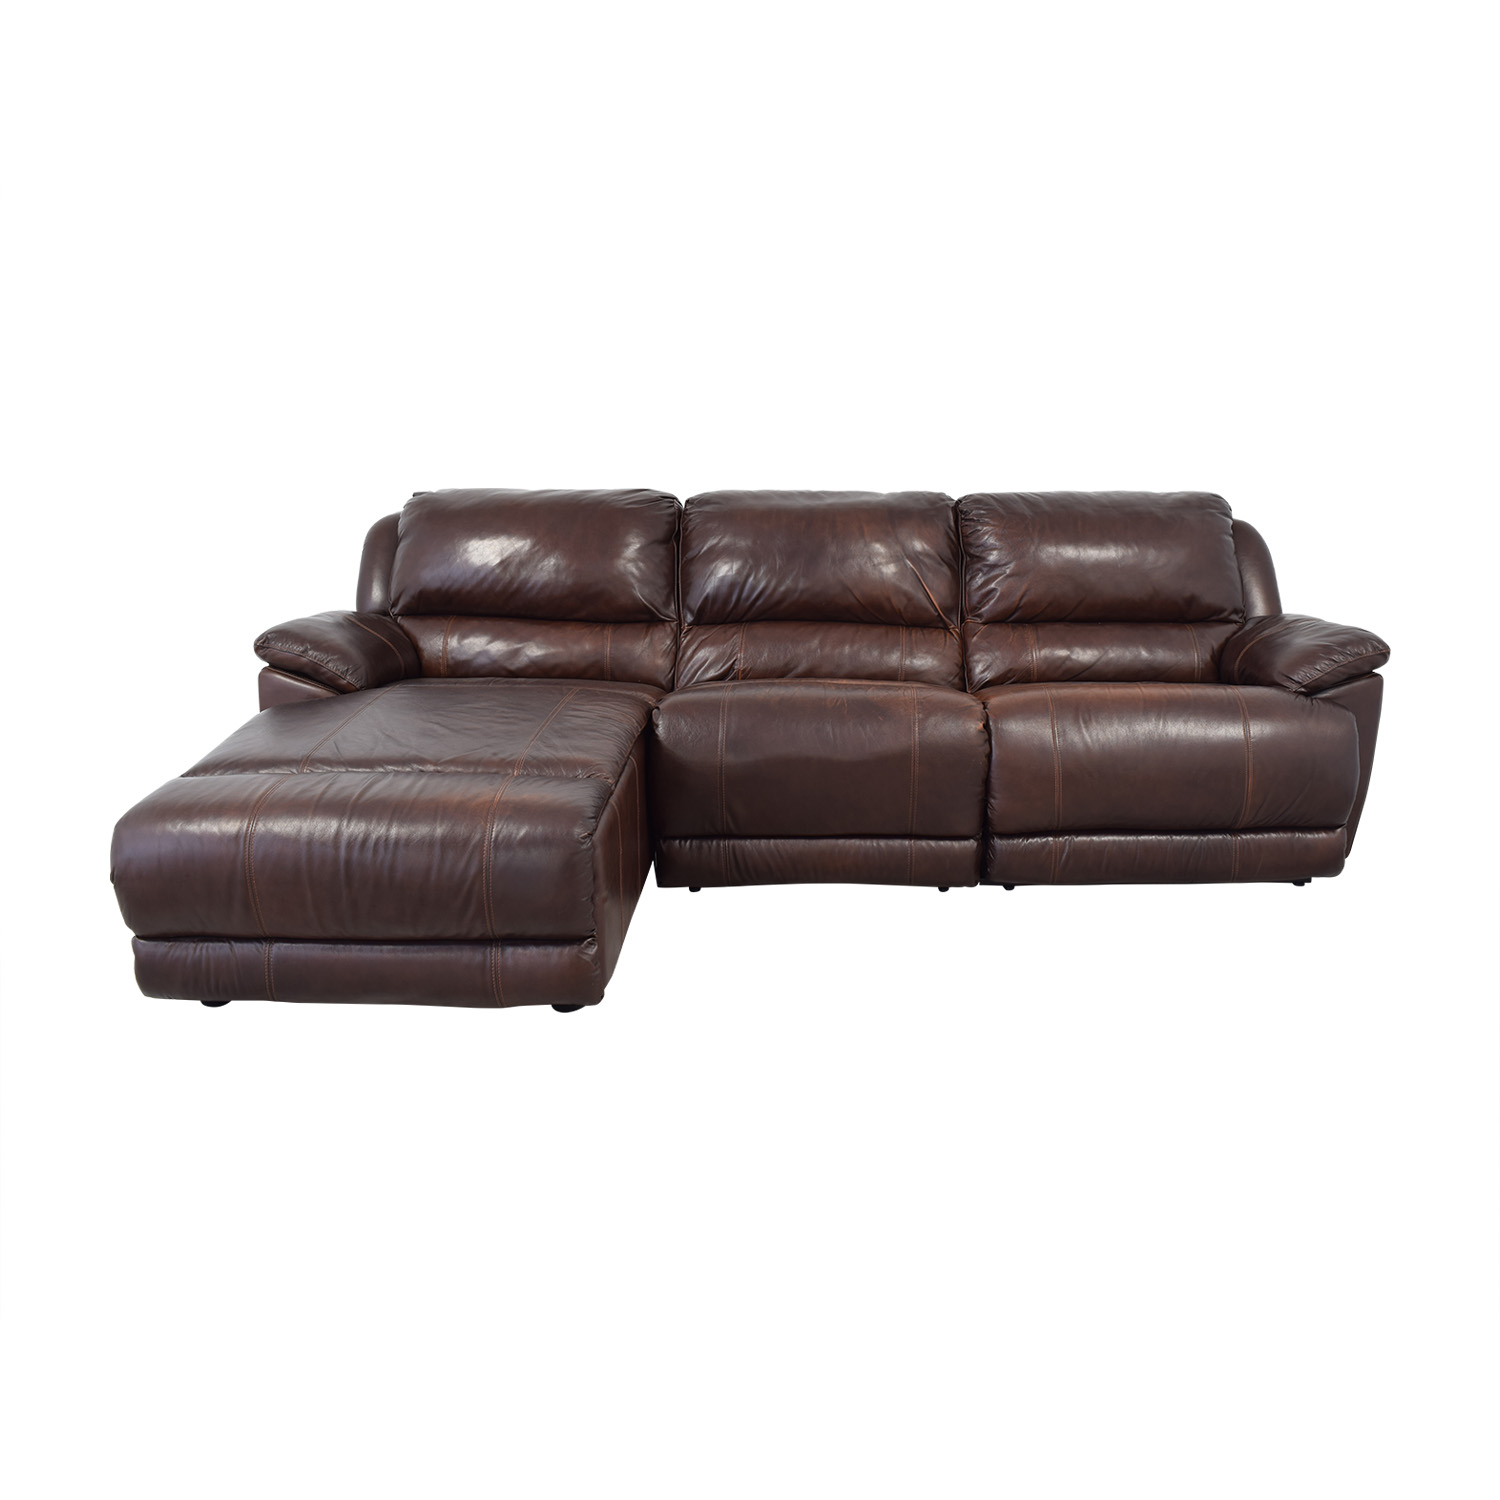 Macy's Macy's Leather Sectional coupon